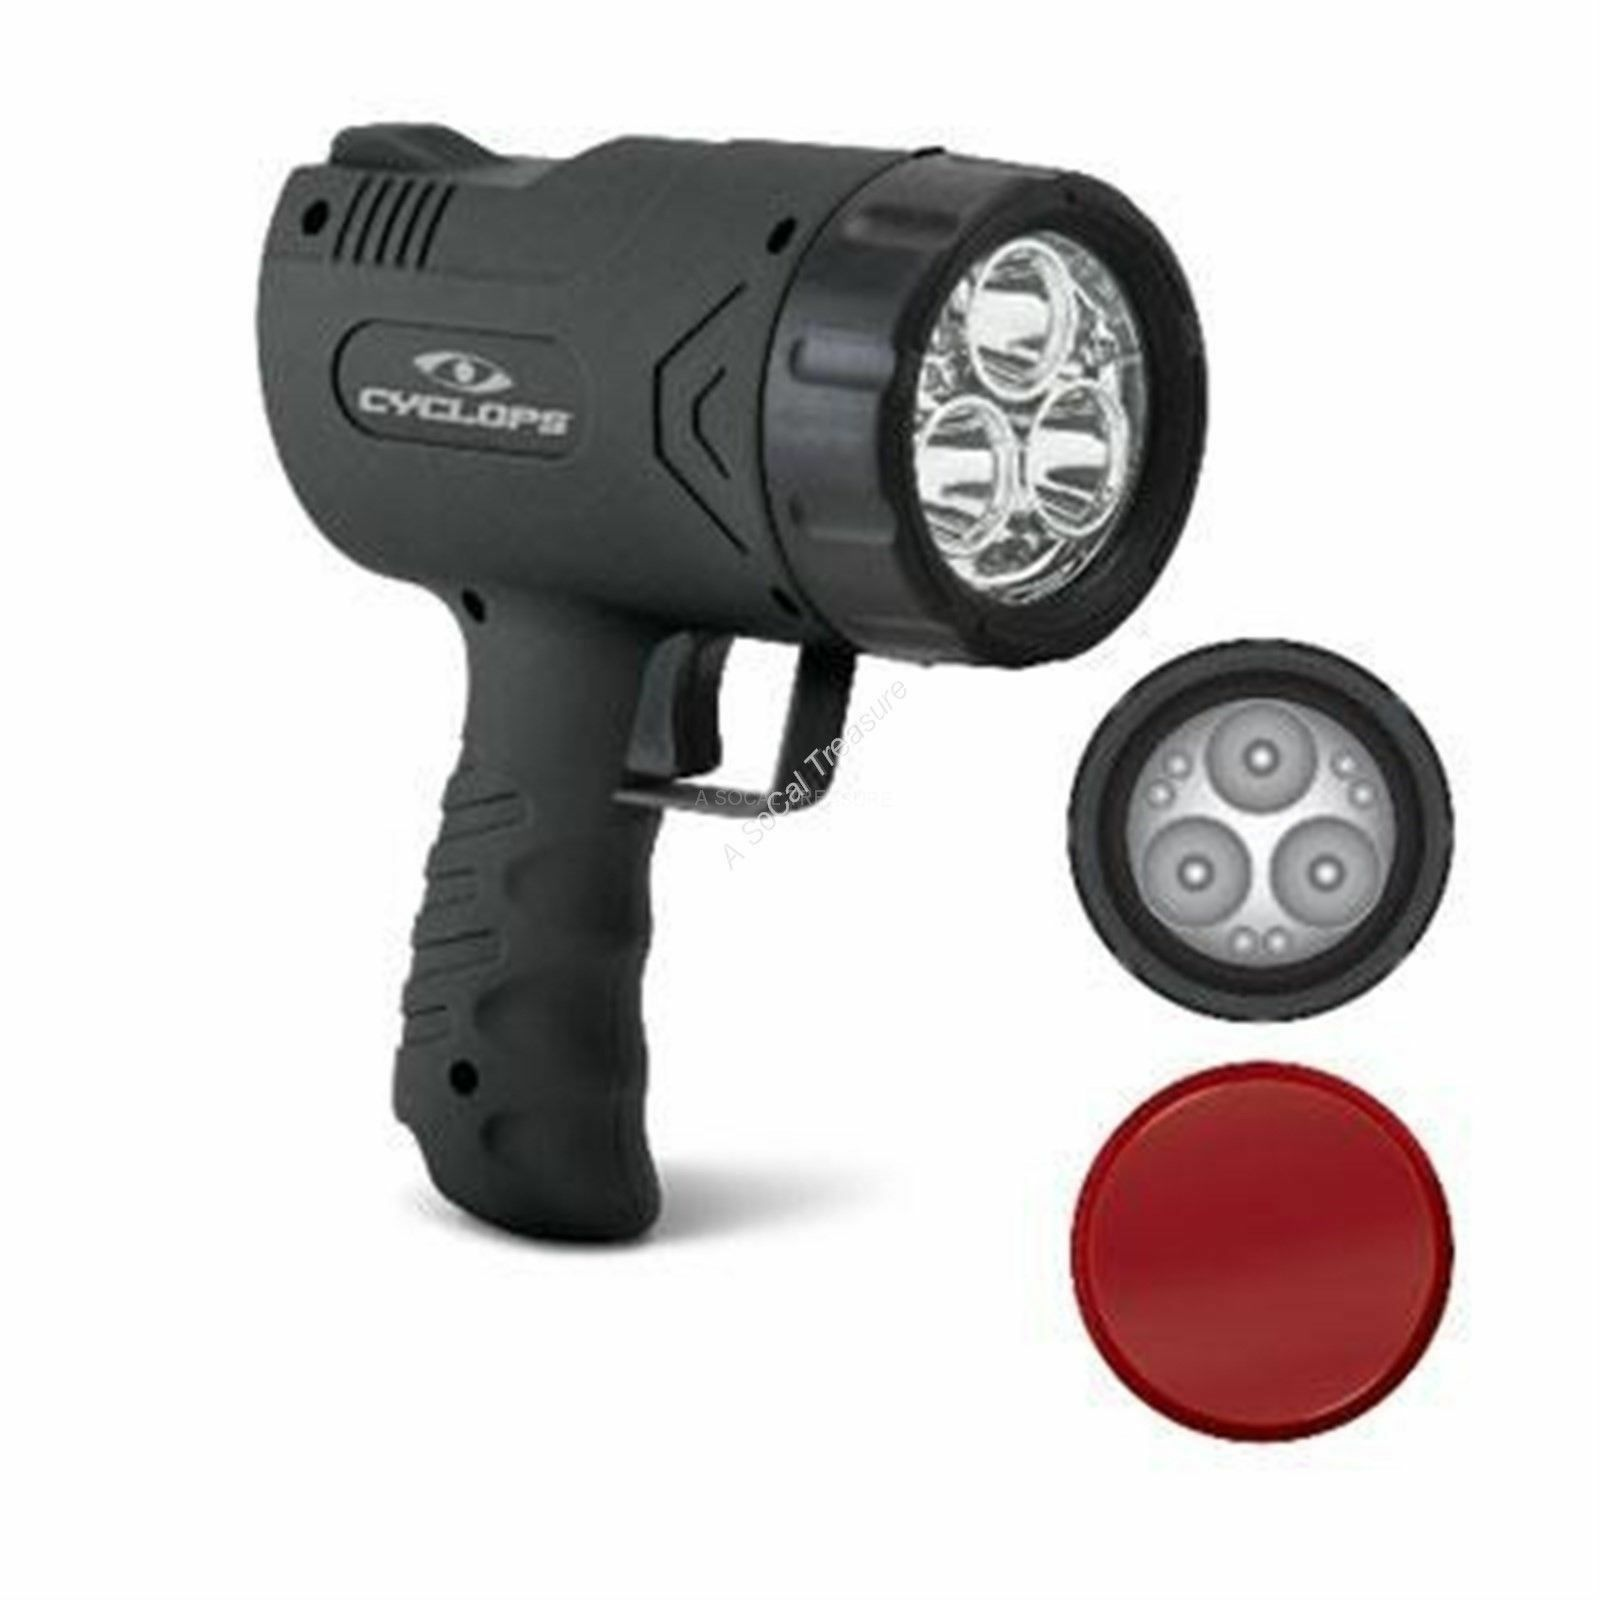 LED Hunting Spotlight Rechargeable 1100 Lumen Handheld Cyclops  Revo Luxeon ACDC  with 100% quality and %100 service